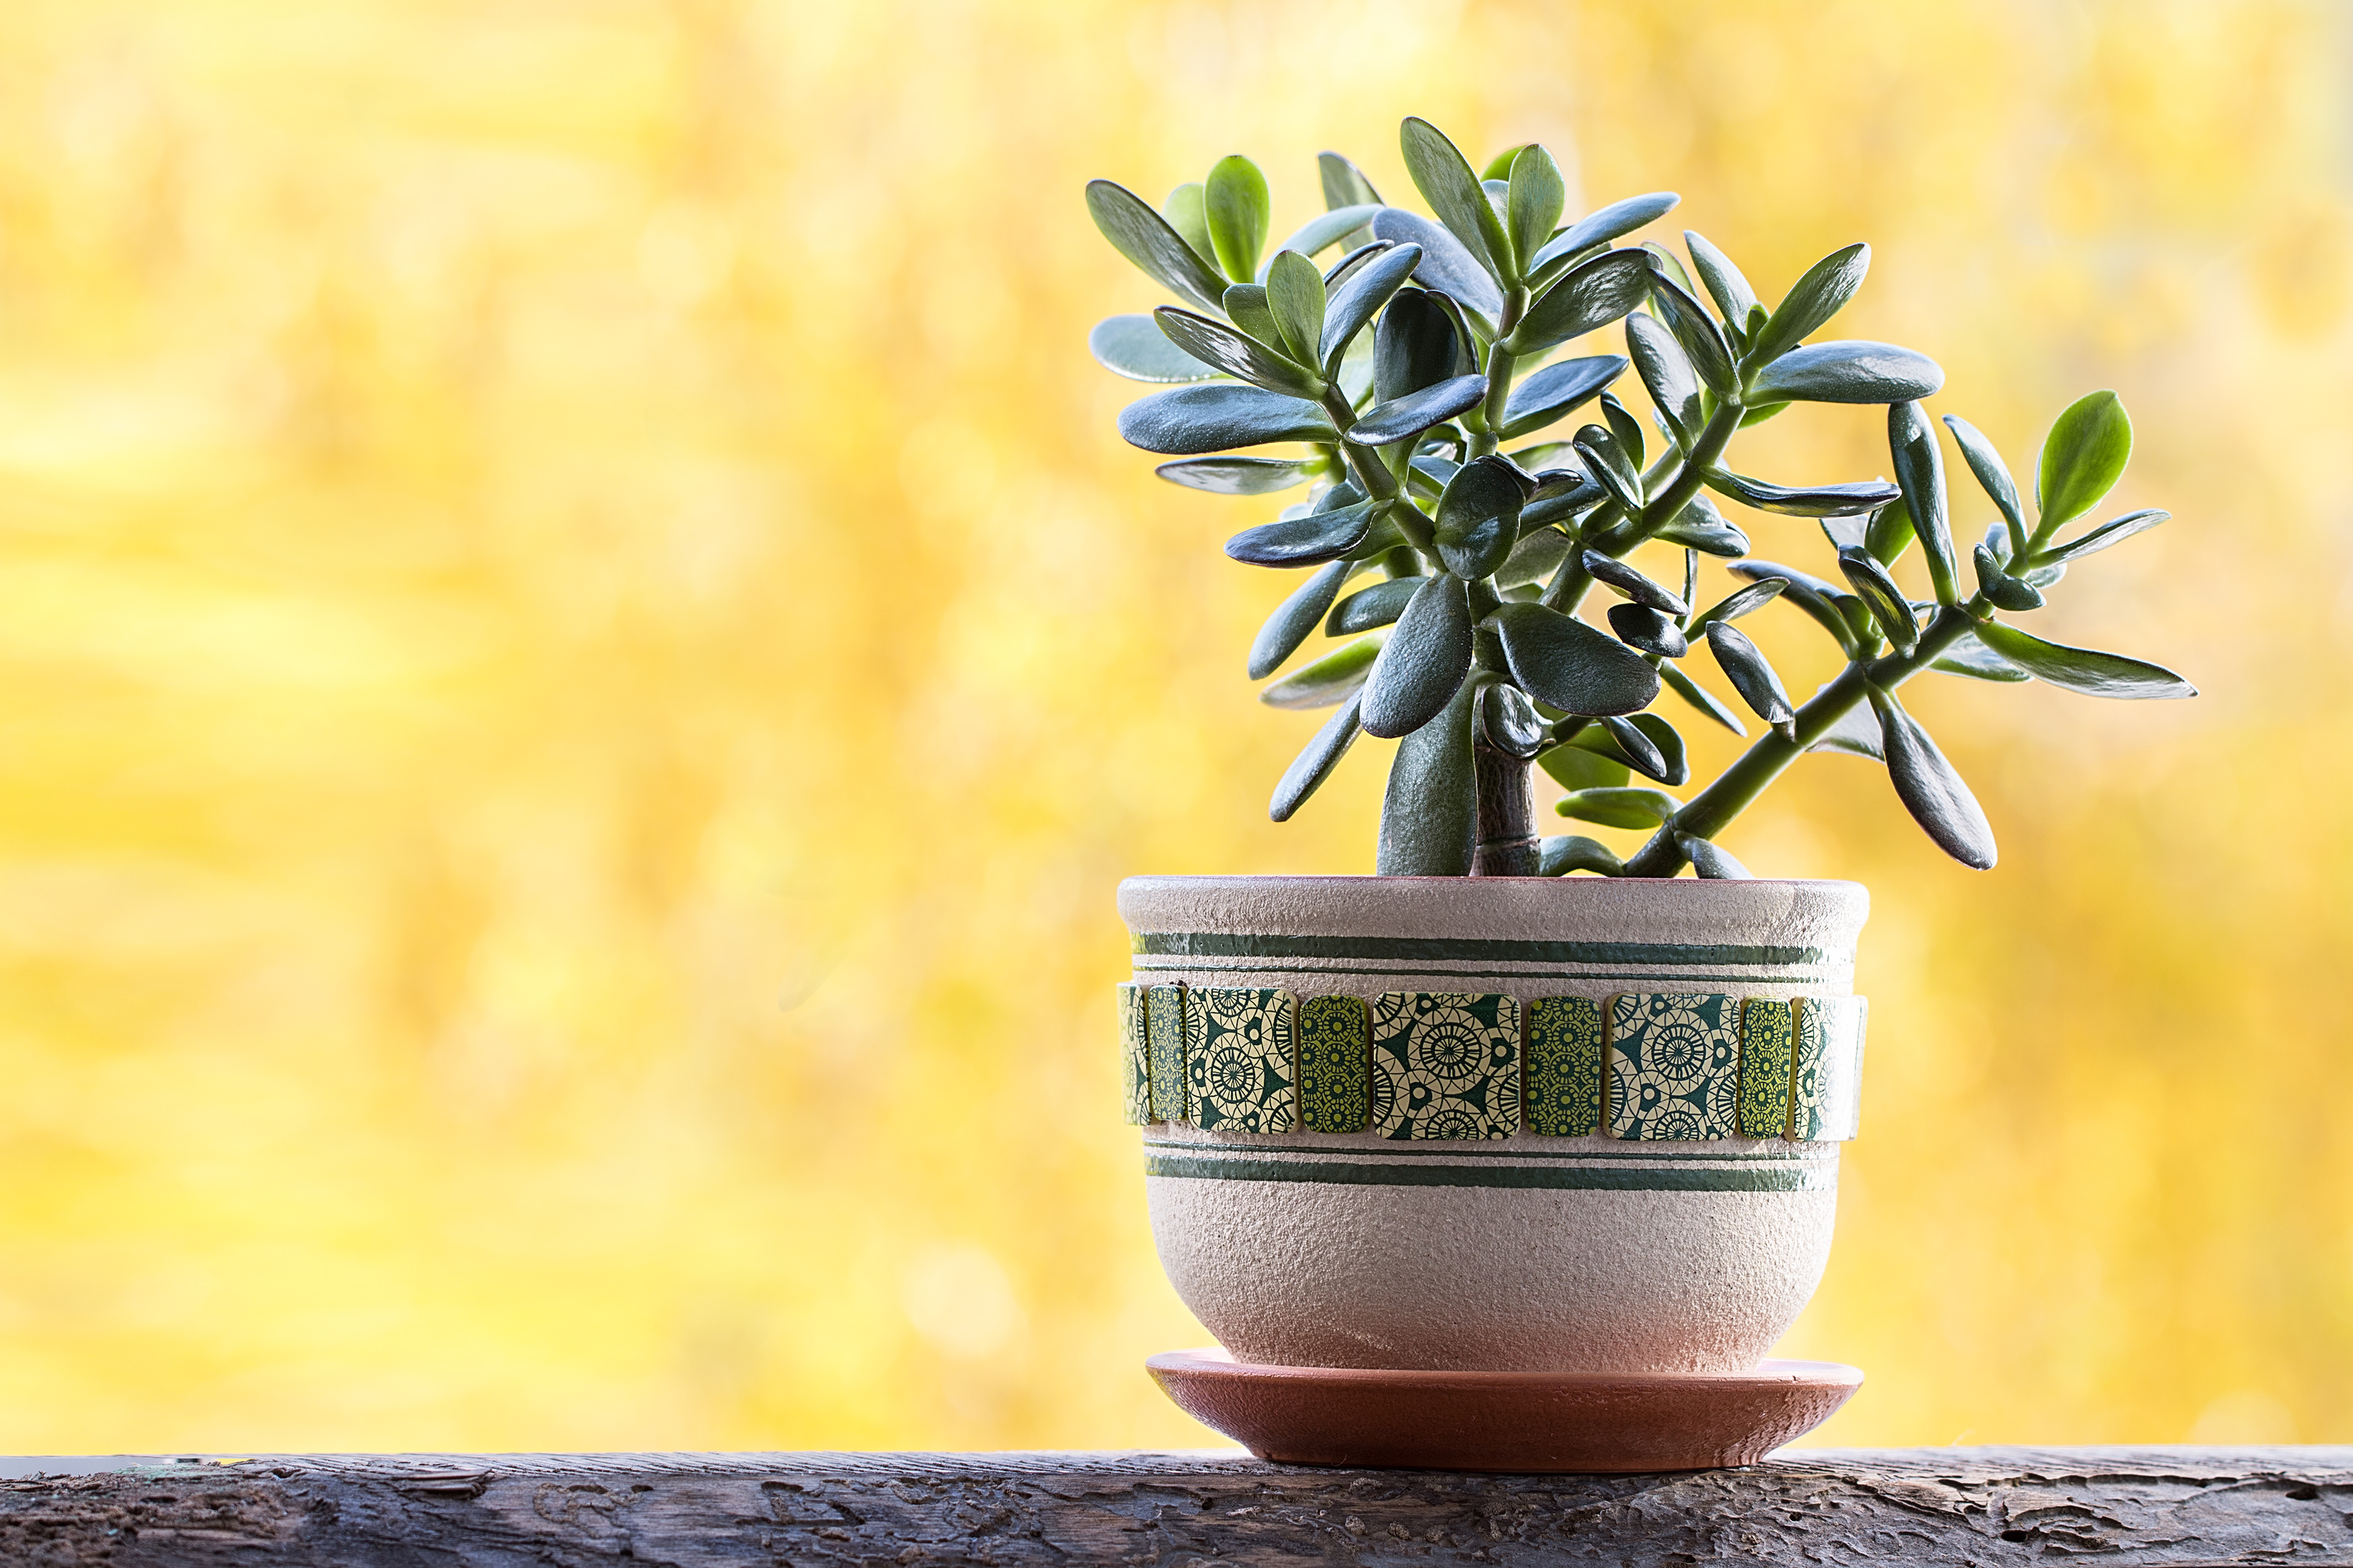 Clay pot of Crassular Ovata ,Green Jade Succulent Plants , Lucky plant or Money Tree on yellow background